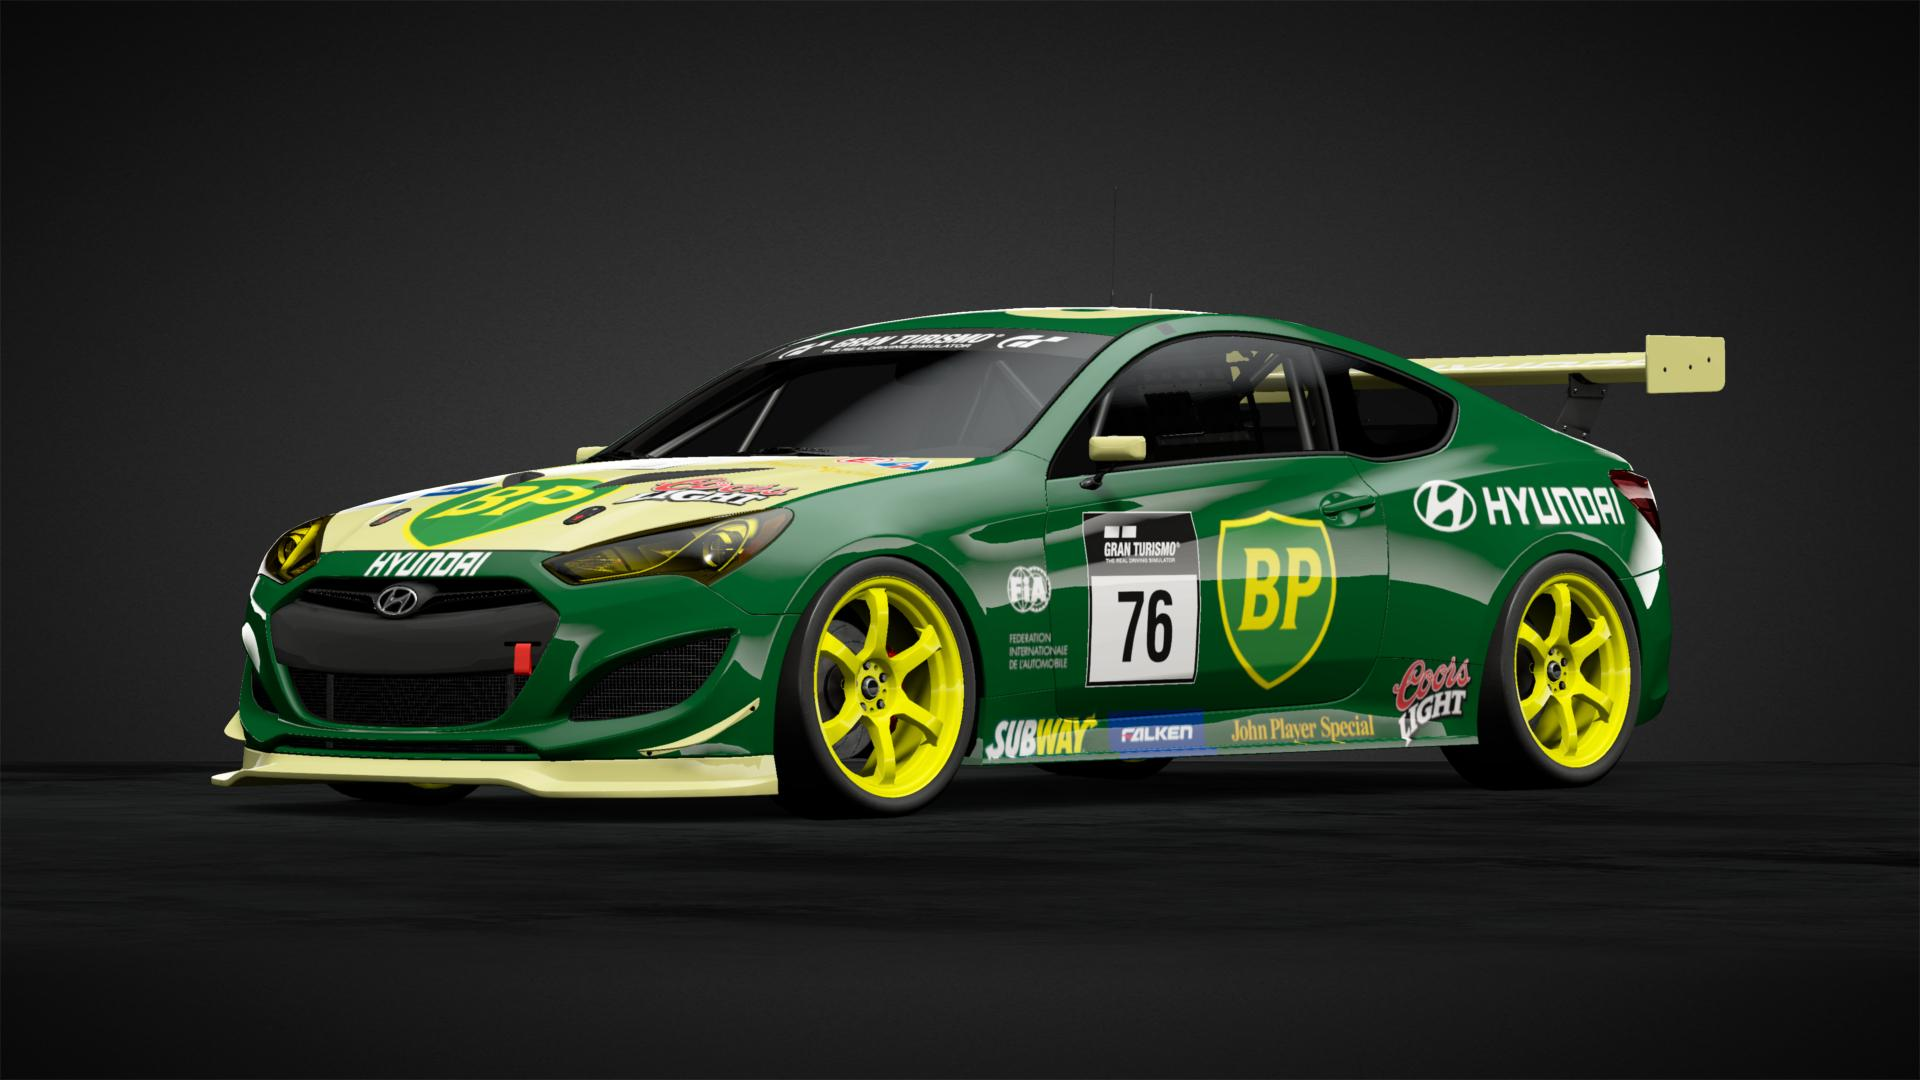 Hyundai BP Genesis Gr 4 19 Car Livery By Scottr 93